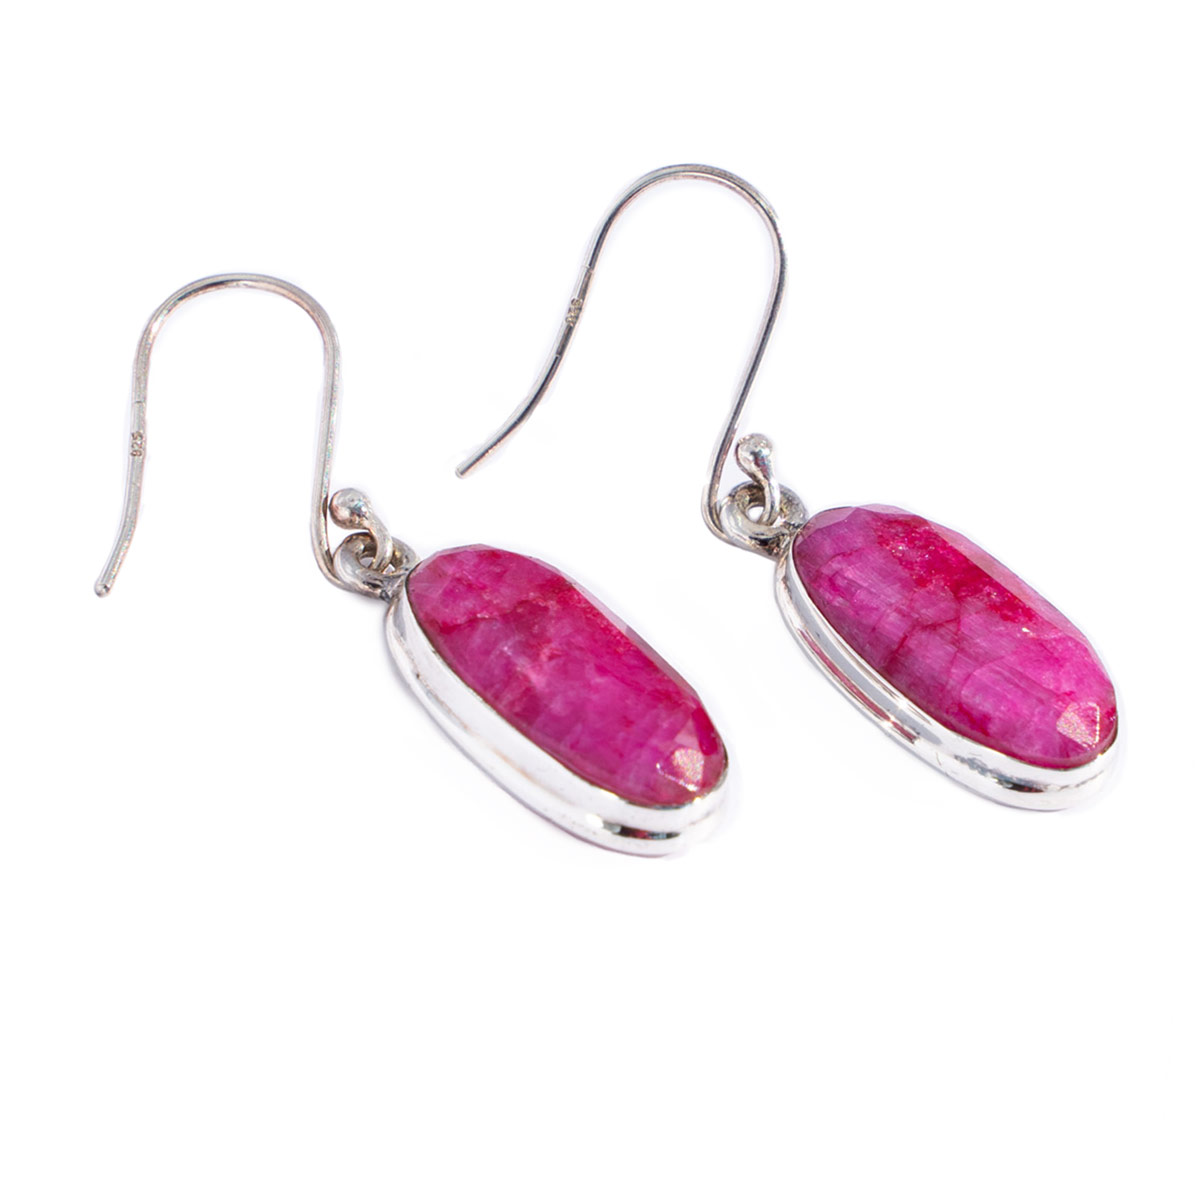 Sri Avinash Infused™ 13.2cts Ruby Earrings in Sterling Silver - Love & Compassion Infusion